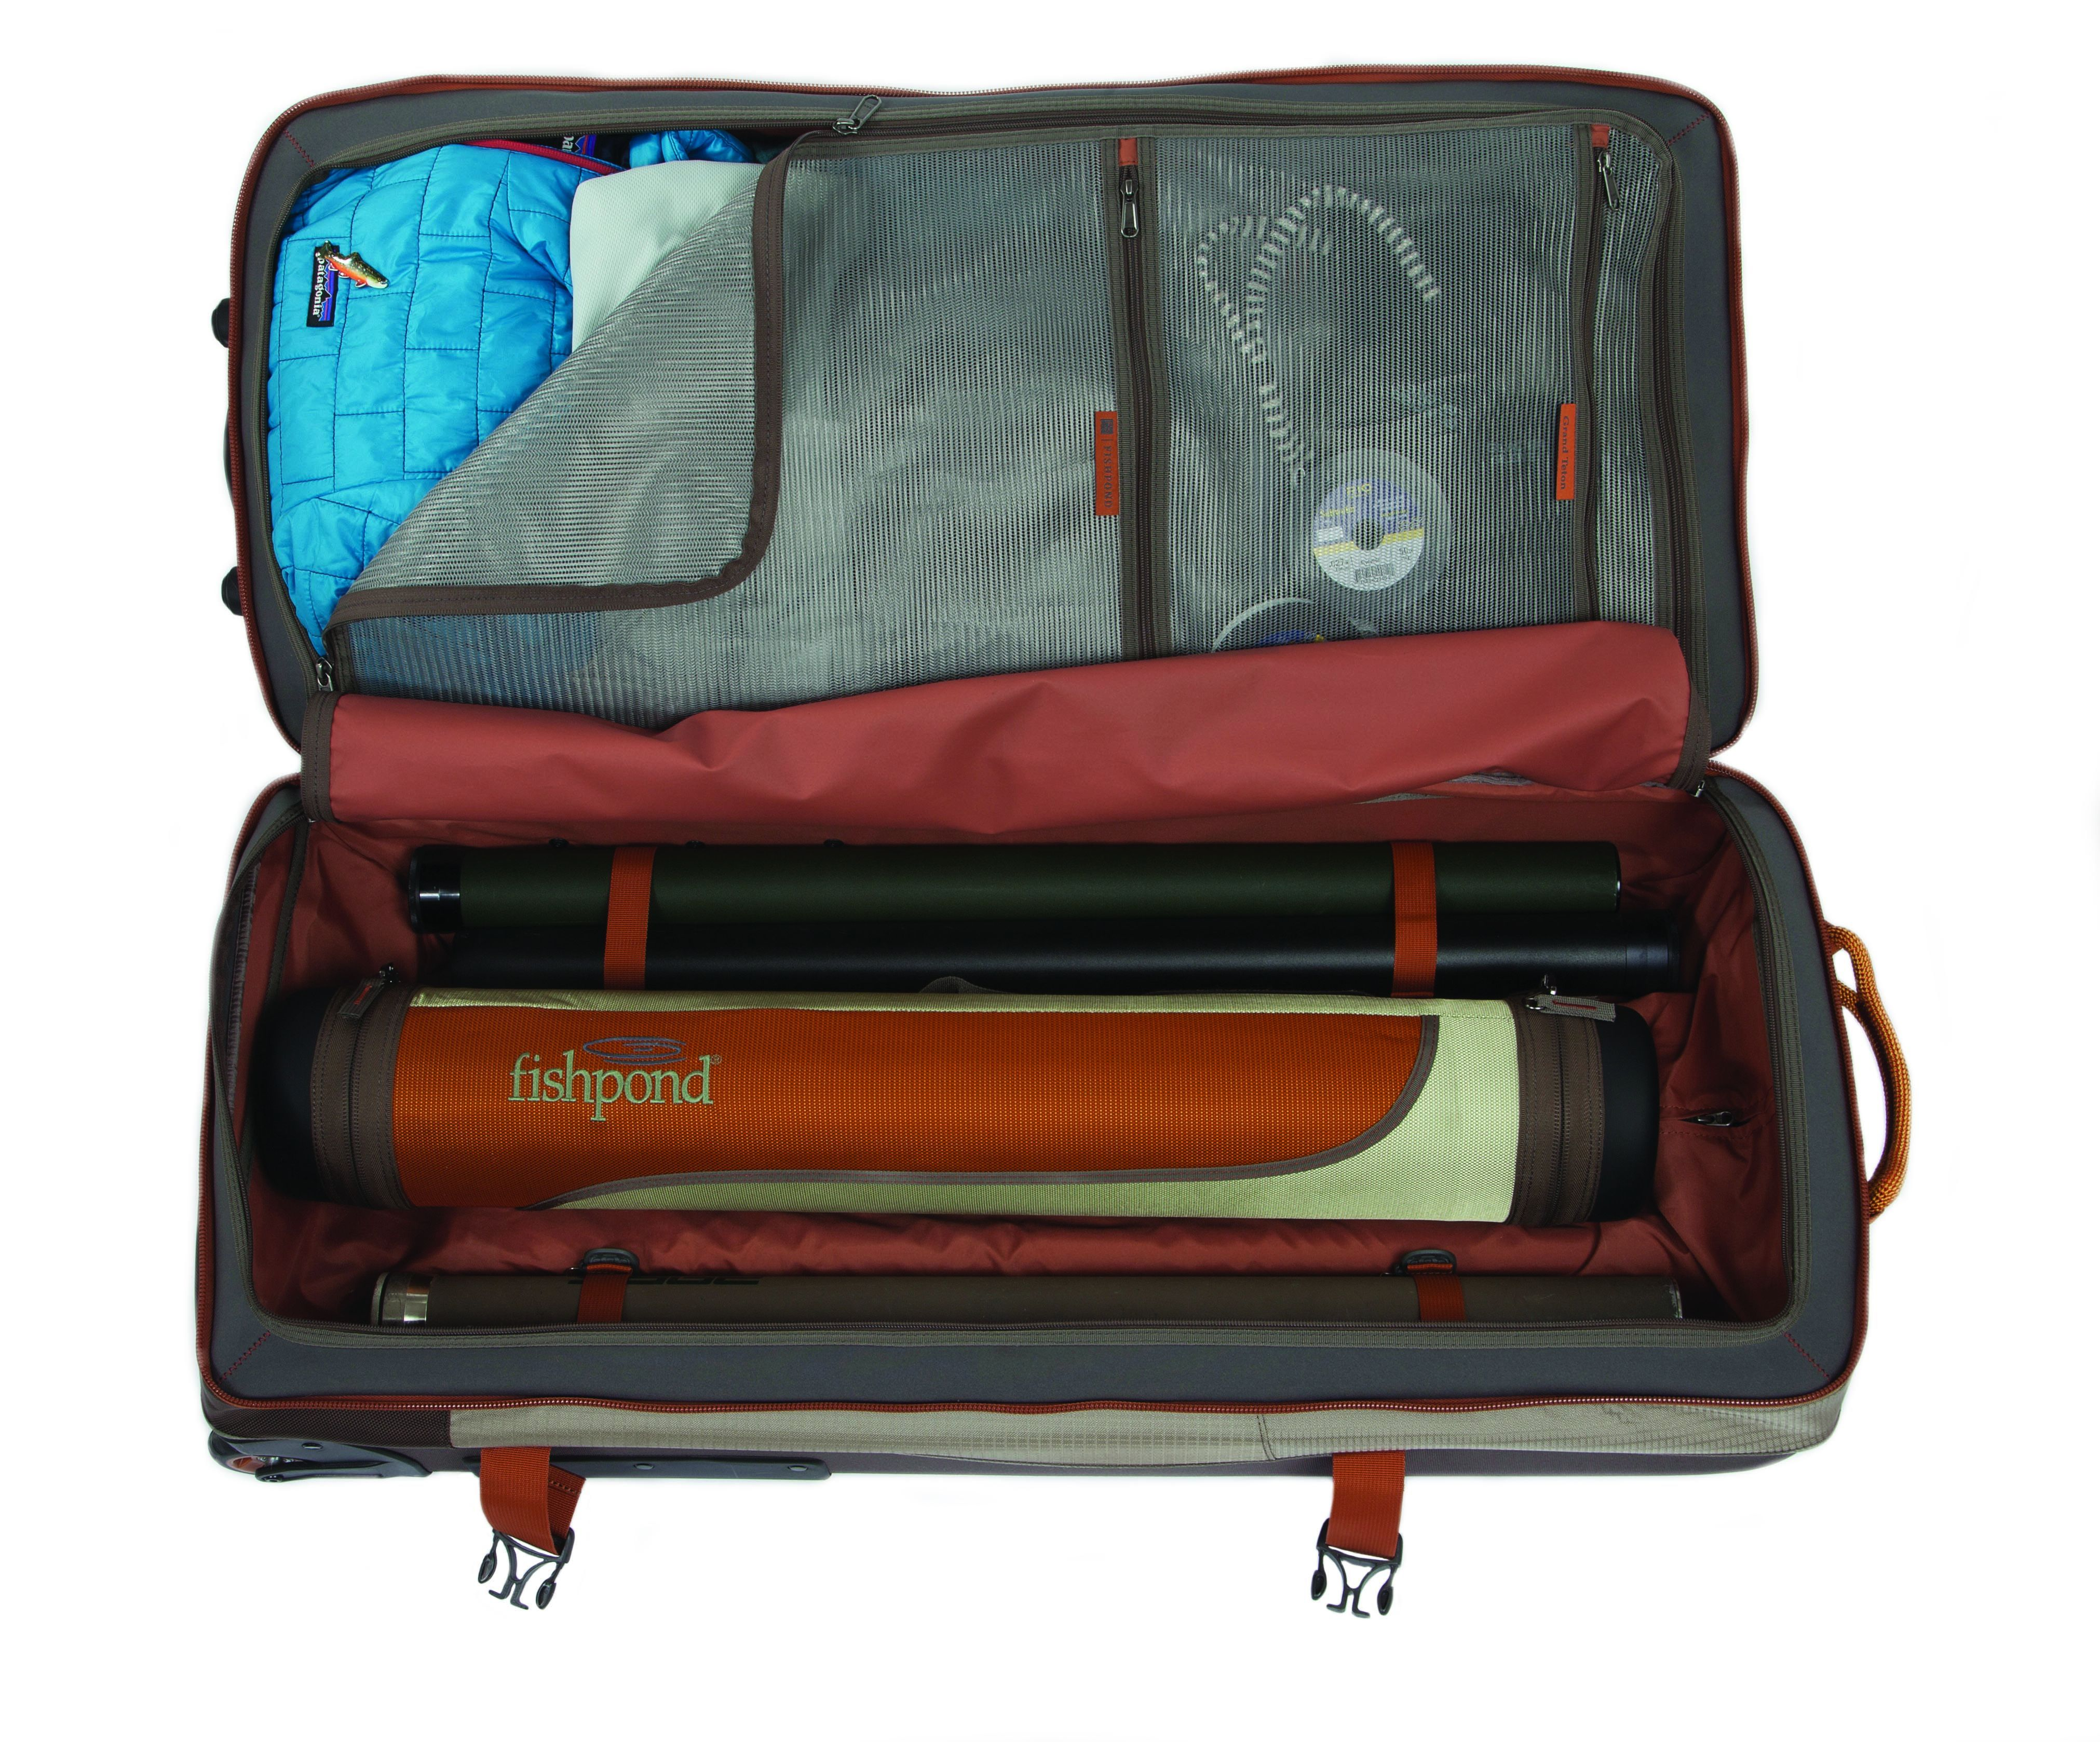 Fishpond Fishpond Grand Teton Rolling Luggage Feather